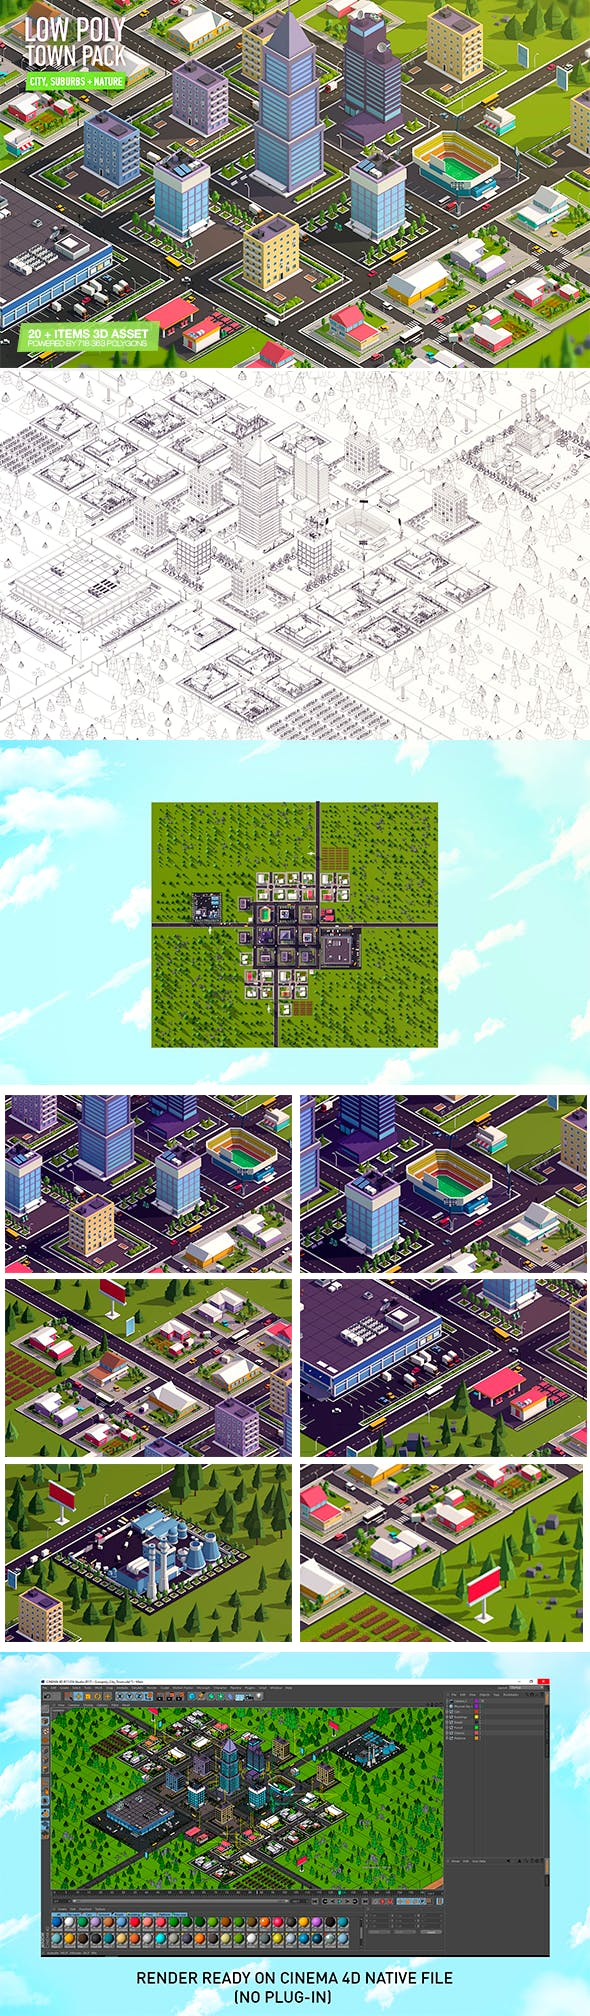 Cartoon Low Poly Town City Pack - 3DOcean Item for Sale